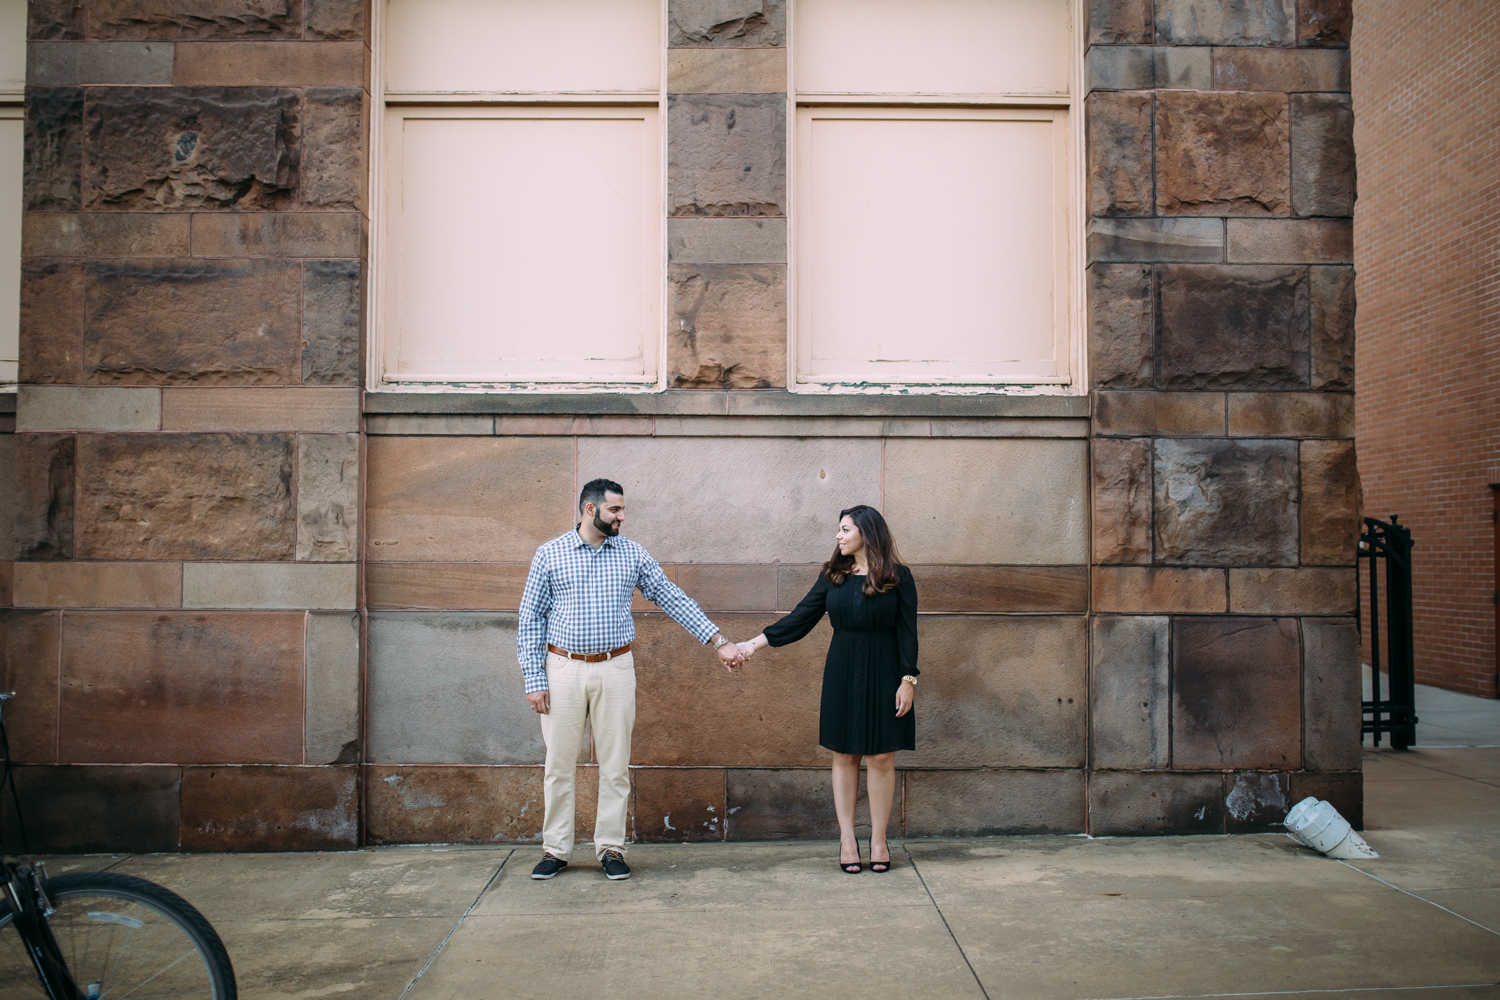 Ashley-reed-photography-pittsburgh-engagement-engagementphotography-engagementphotographer-stationsquare-statio-square-pittsburghengagementphotography-19.jpg